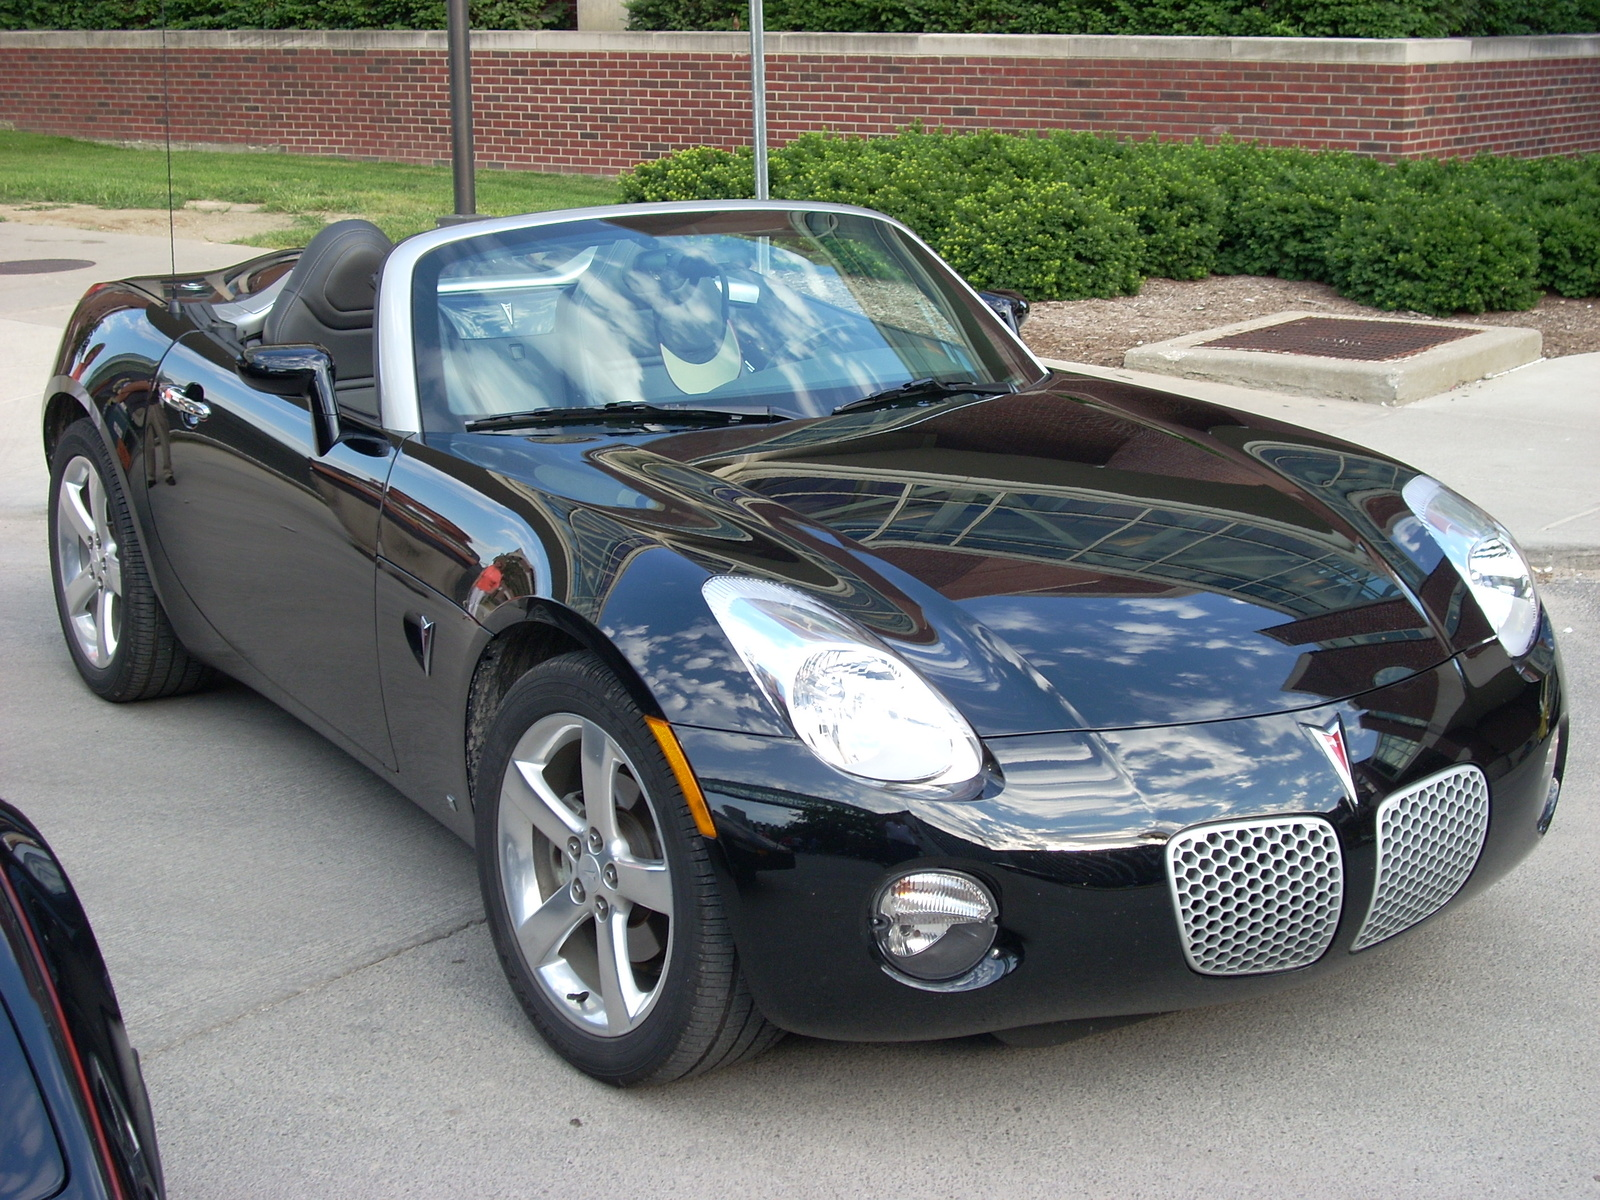 Picture of 2006 Pontiac Solstice Roadster